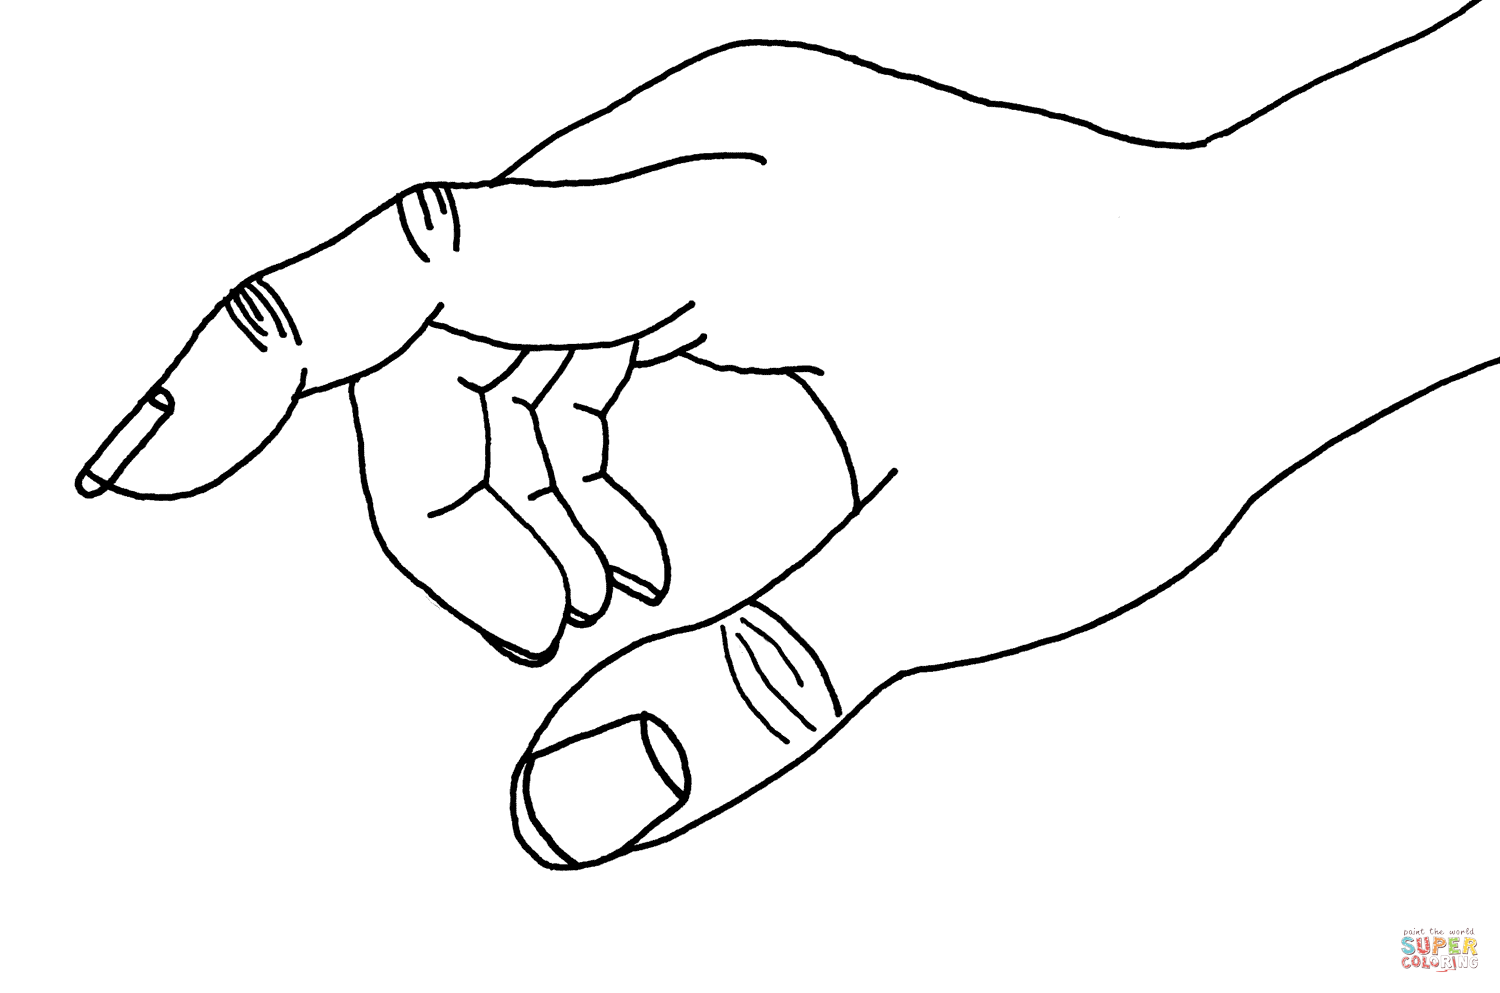 hand coloring  download hand coloring